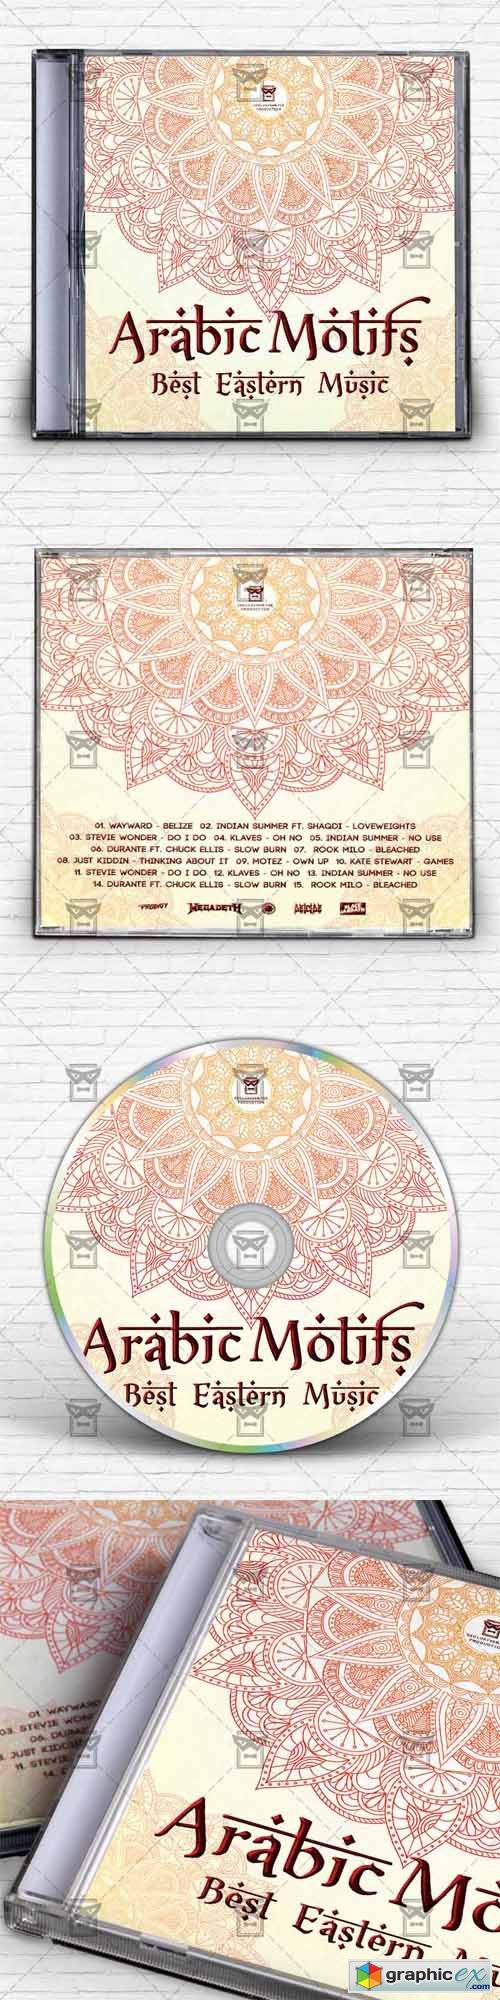 Arabic Motifs - Mixtape Album CD Cover Template